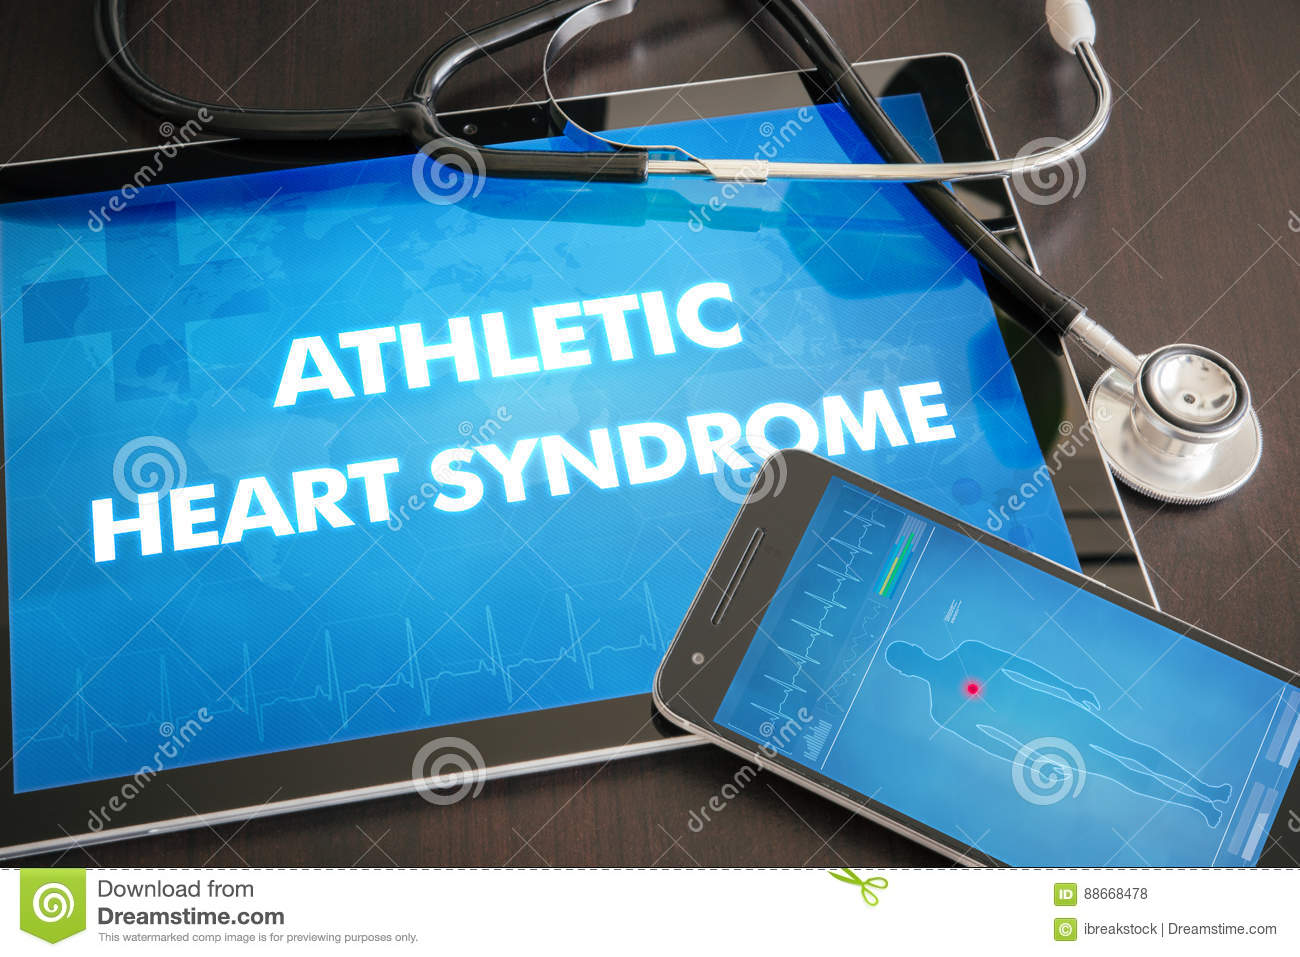 Athletic heart syndrome (heart disorder) diagnosis medical concept on tablet screen with stethoscope